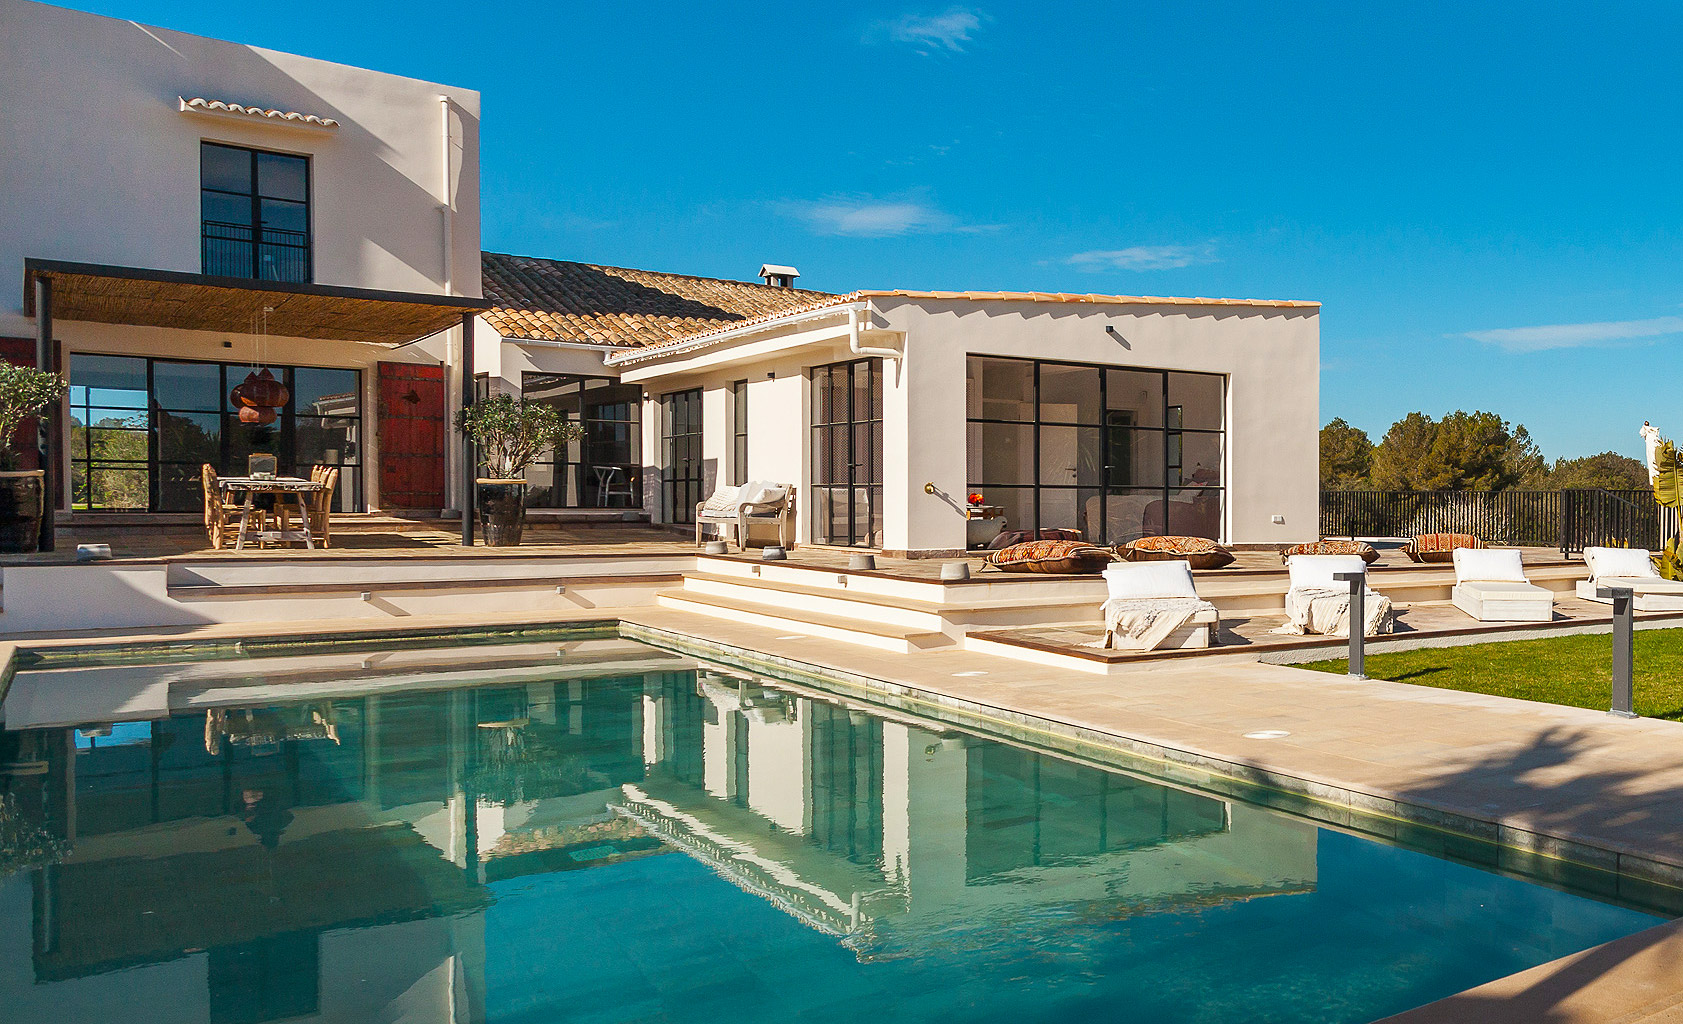 Figures from Spain's National Statistics Institute show that last year was the strongest for the Balearic property market since the global economic crisis. 10,605 property sales took place in 2015, the highest since 2008 - an increase of almost 15% year-on-year.